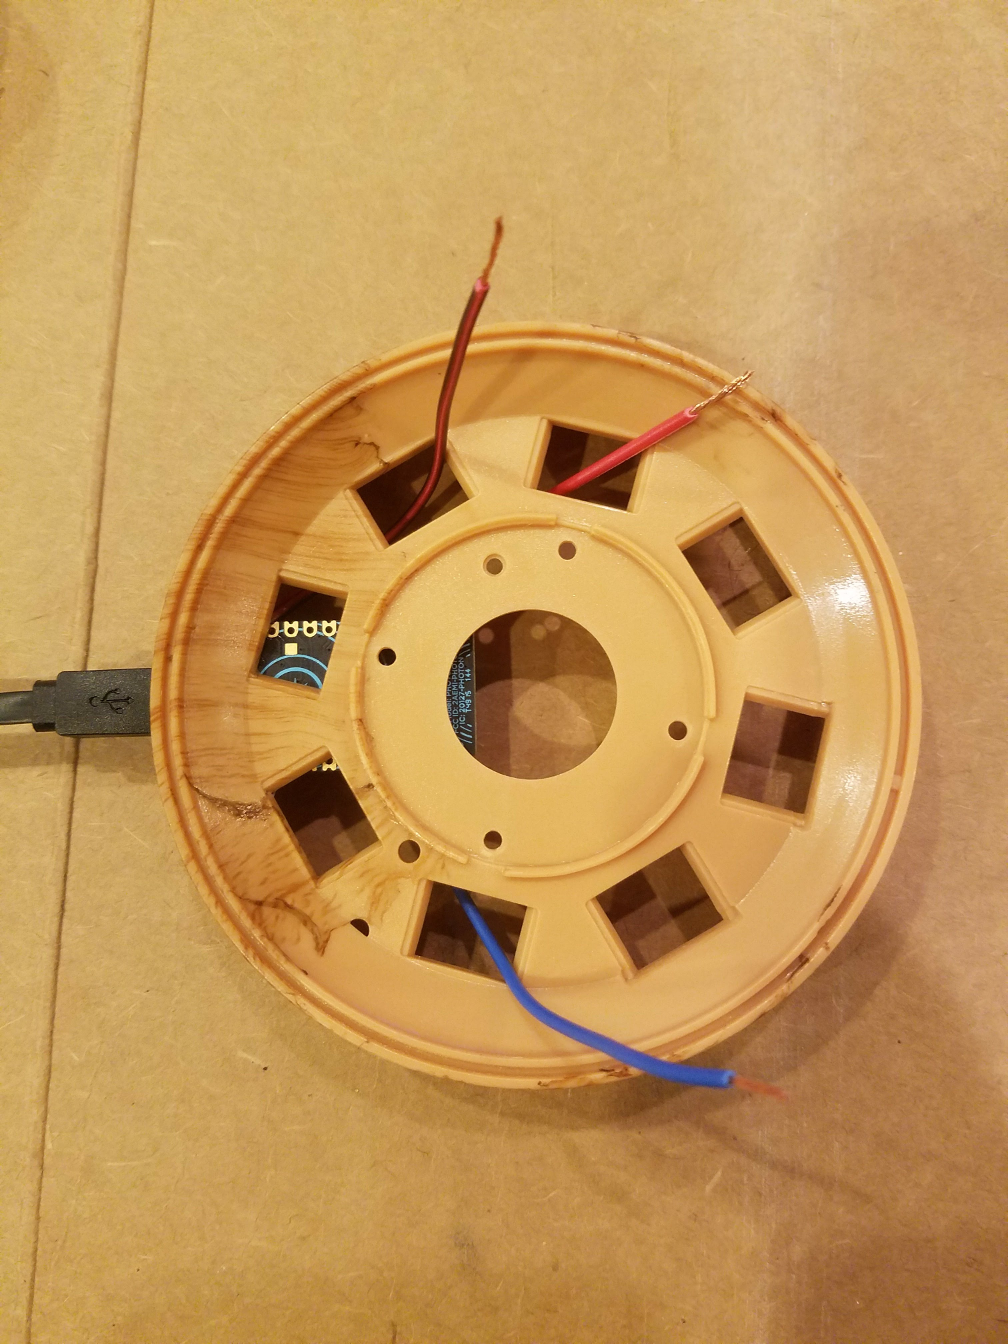 Wires thread through lamp base